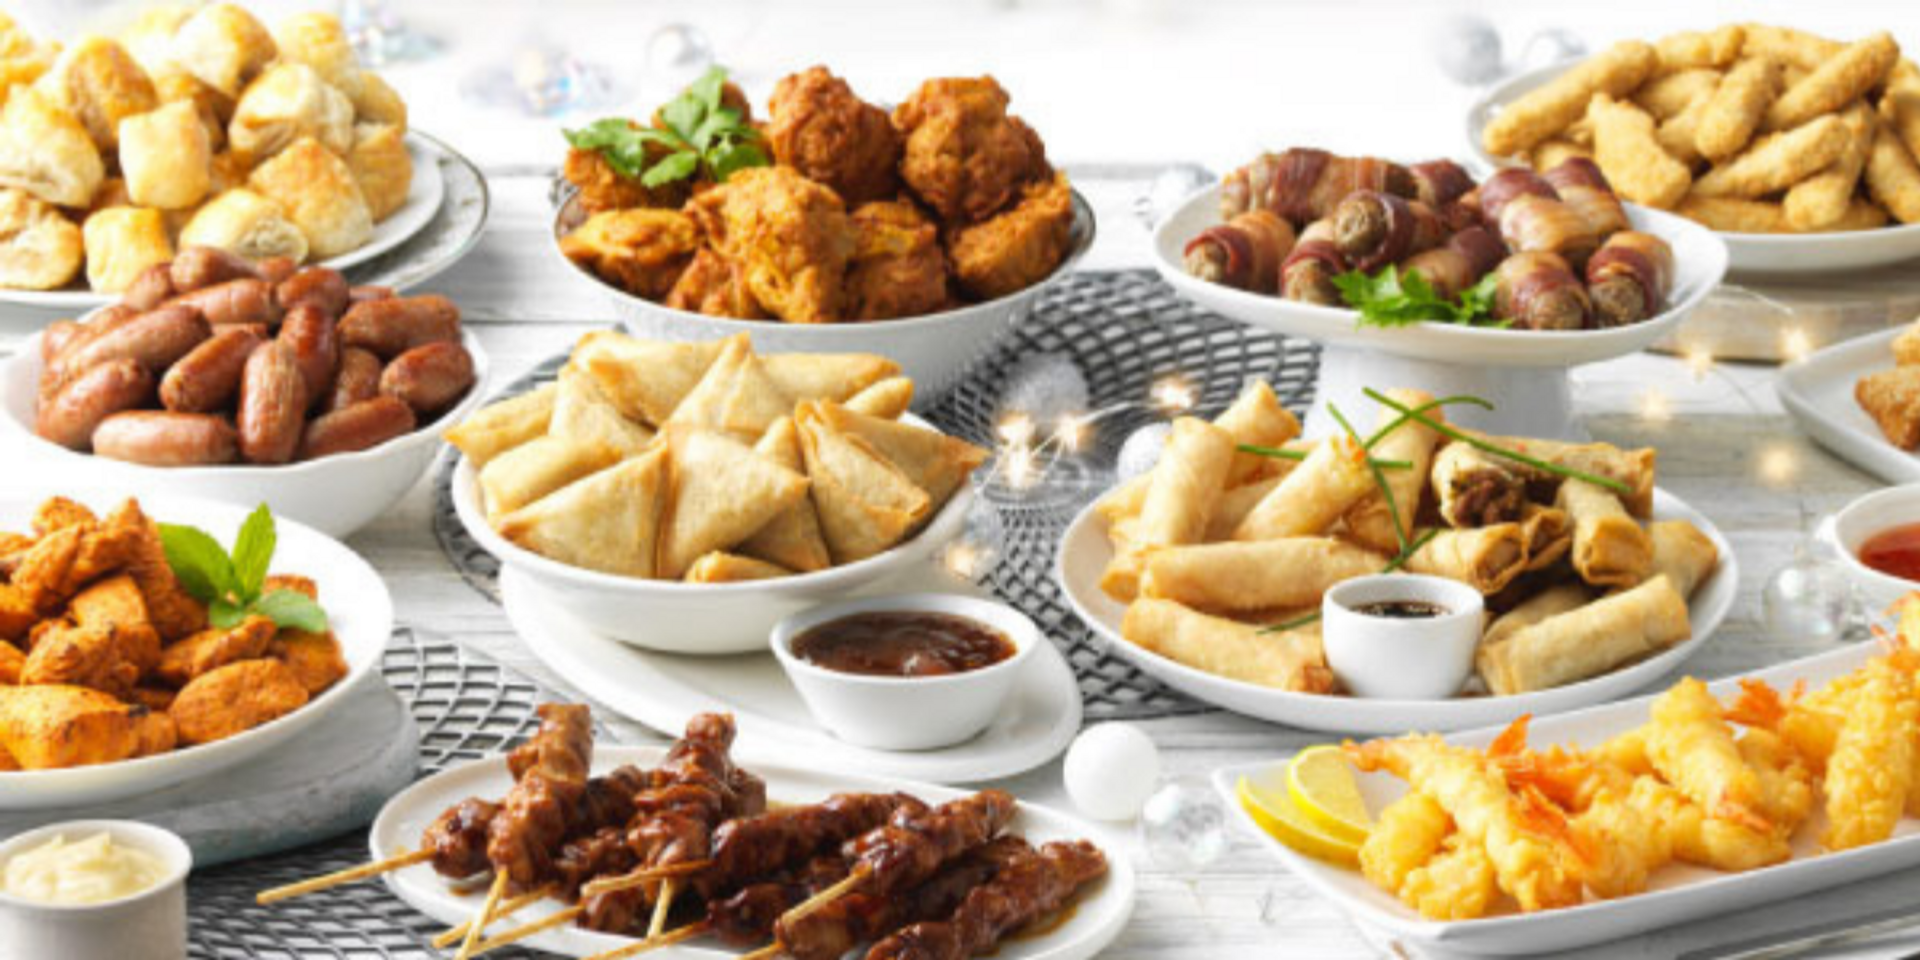 Padstow Food Service | Catering & Cake Decorating Supplies